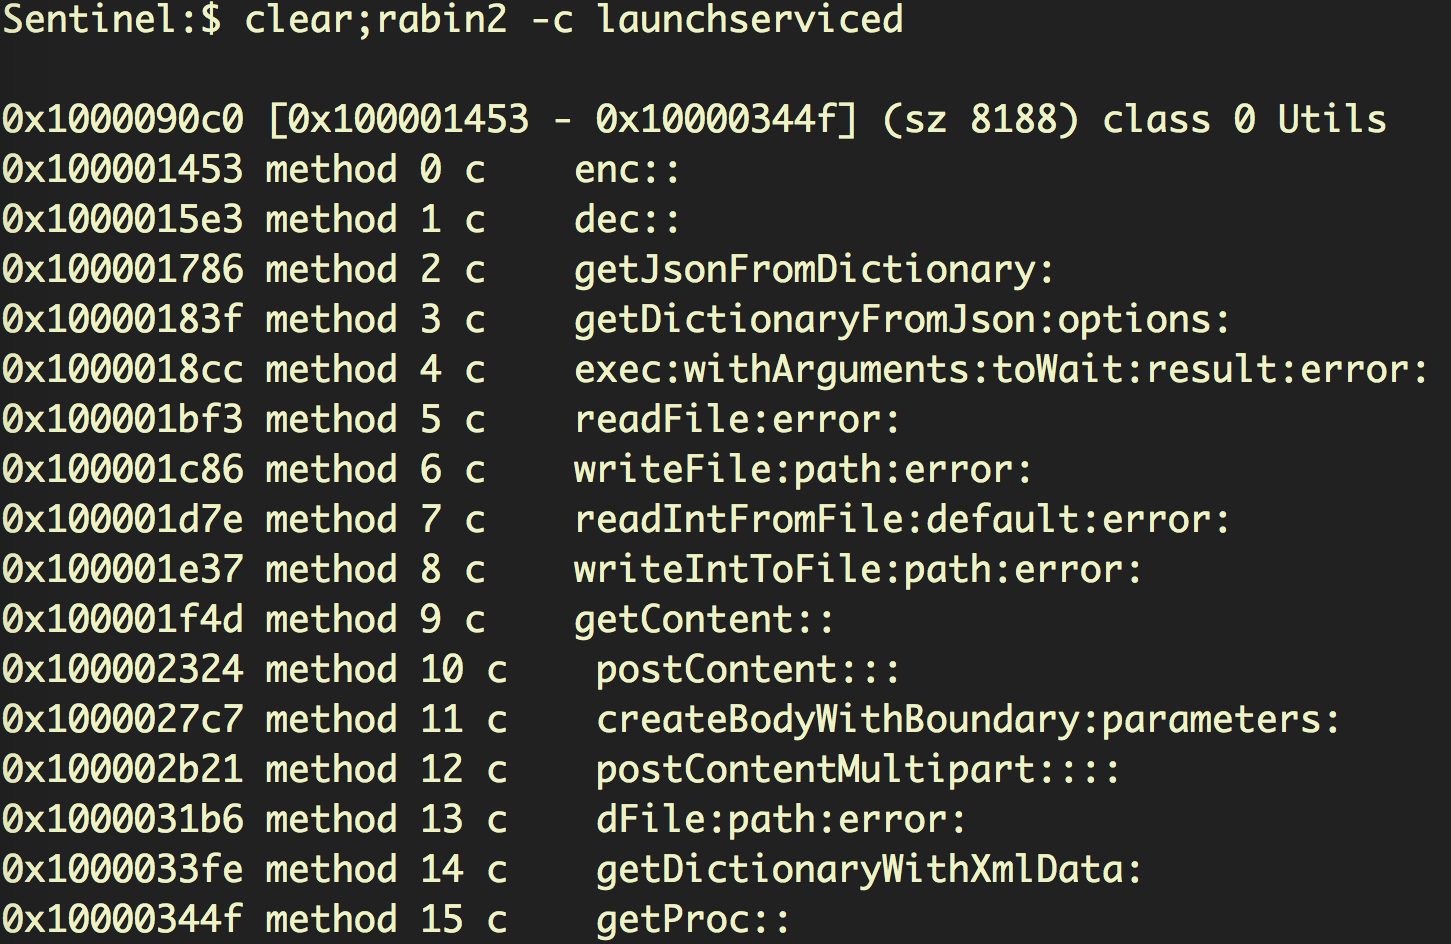 Another screenshot image of the launchserviced code